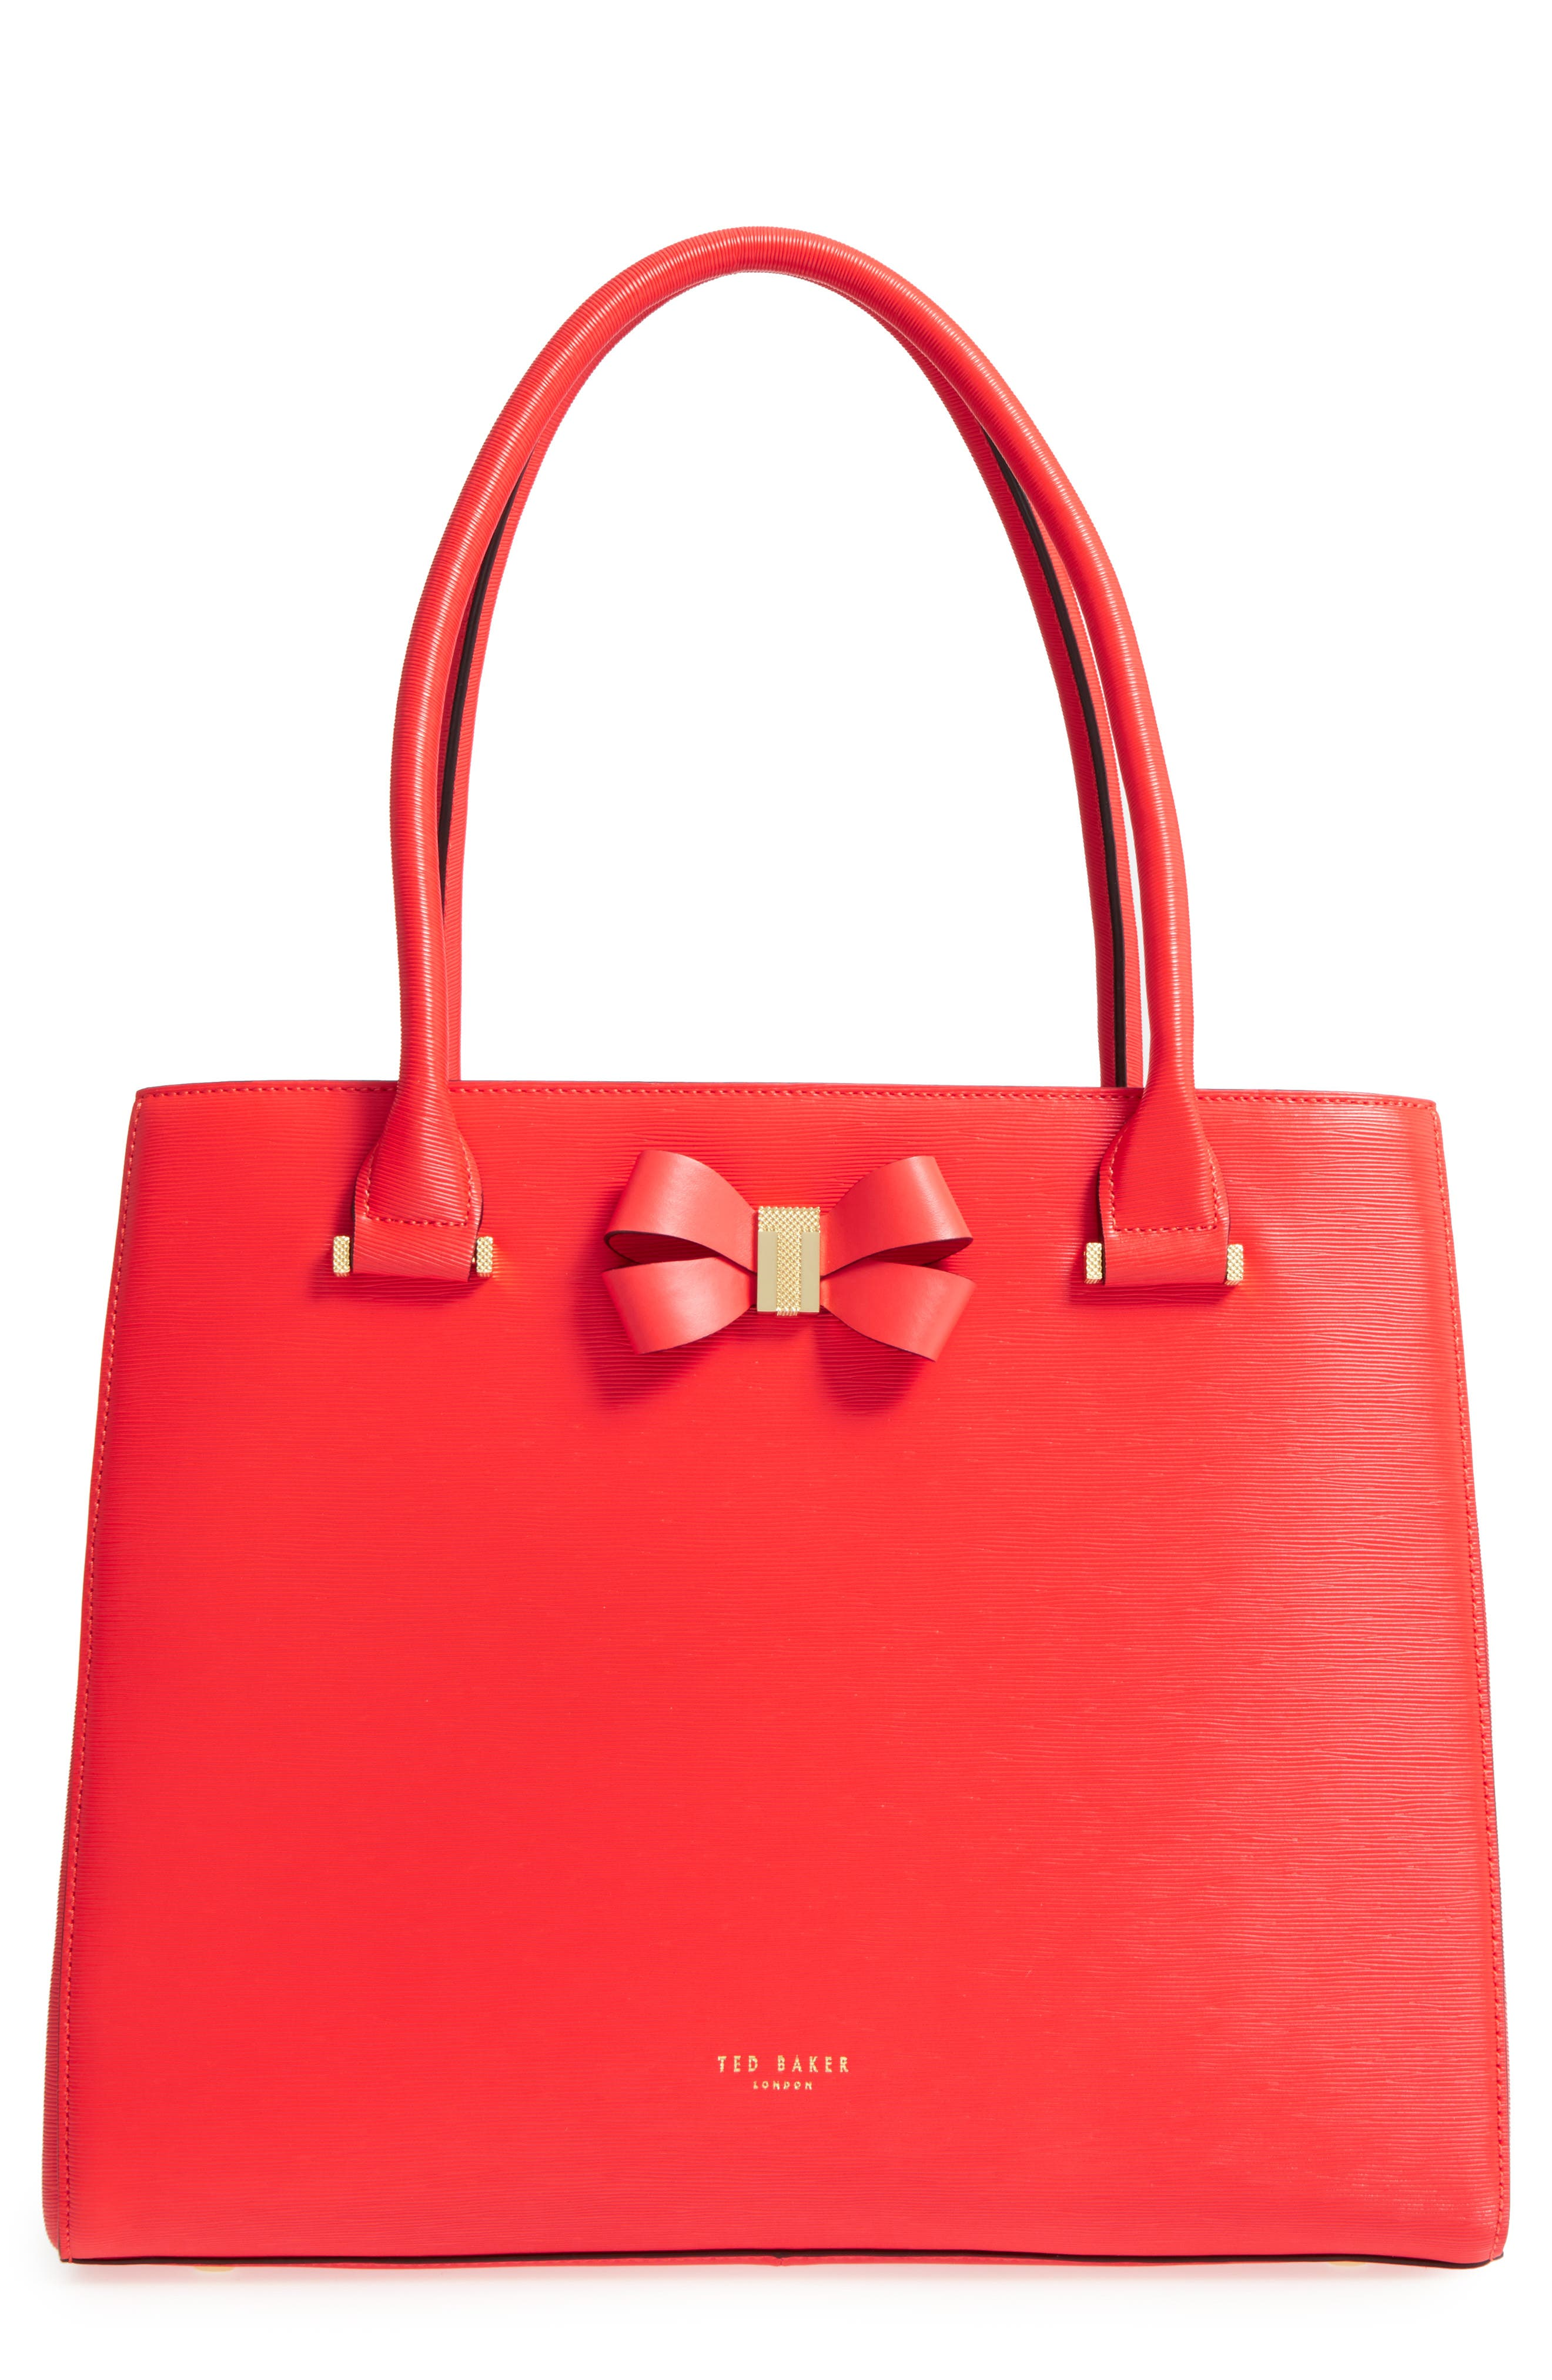 Callaa Bow Leather Shopper,                             Main thumbnail 1, color,                             Bright Red